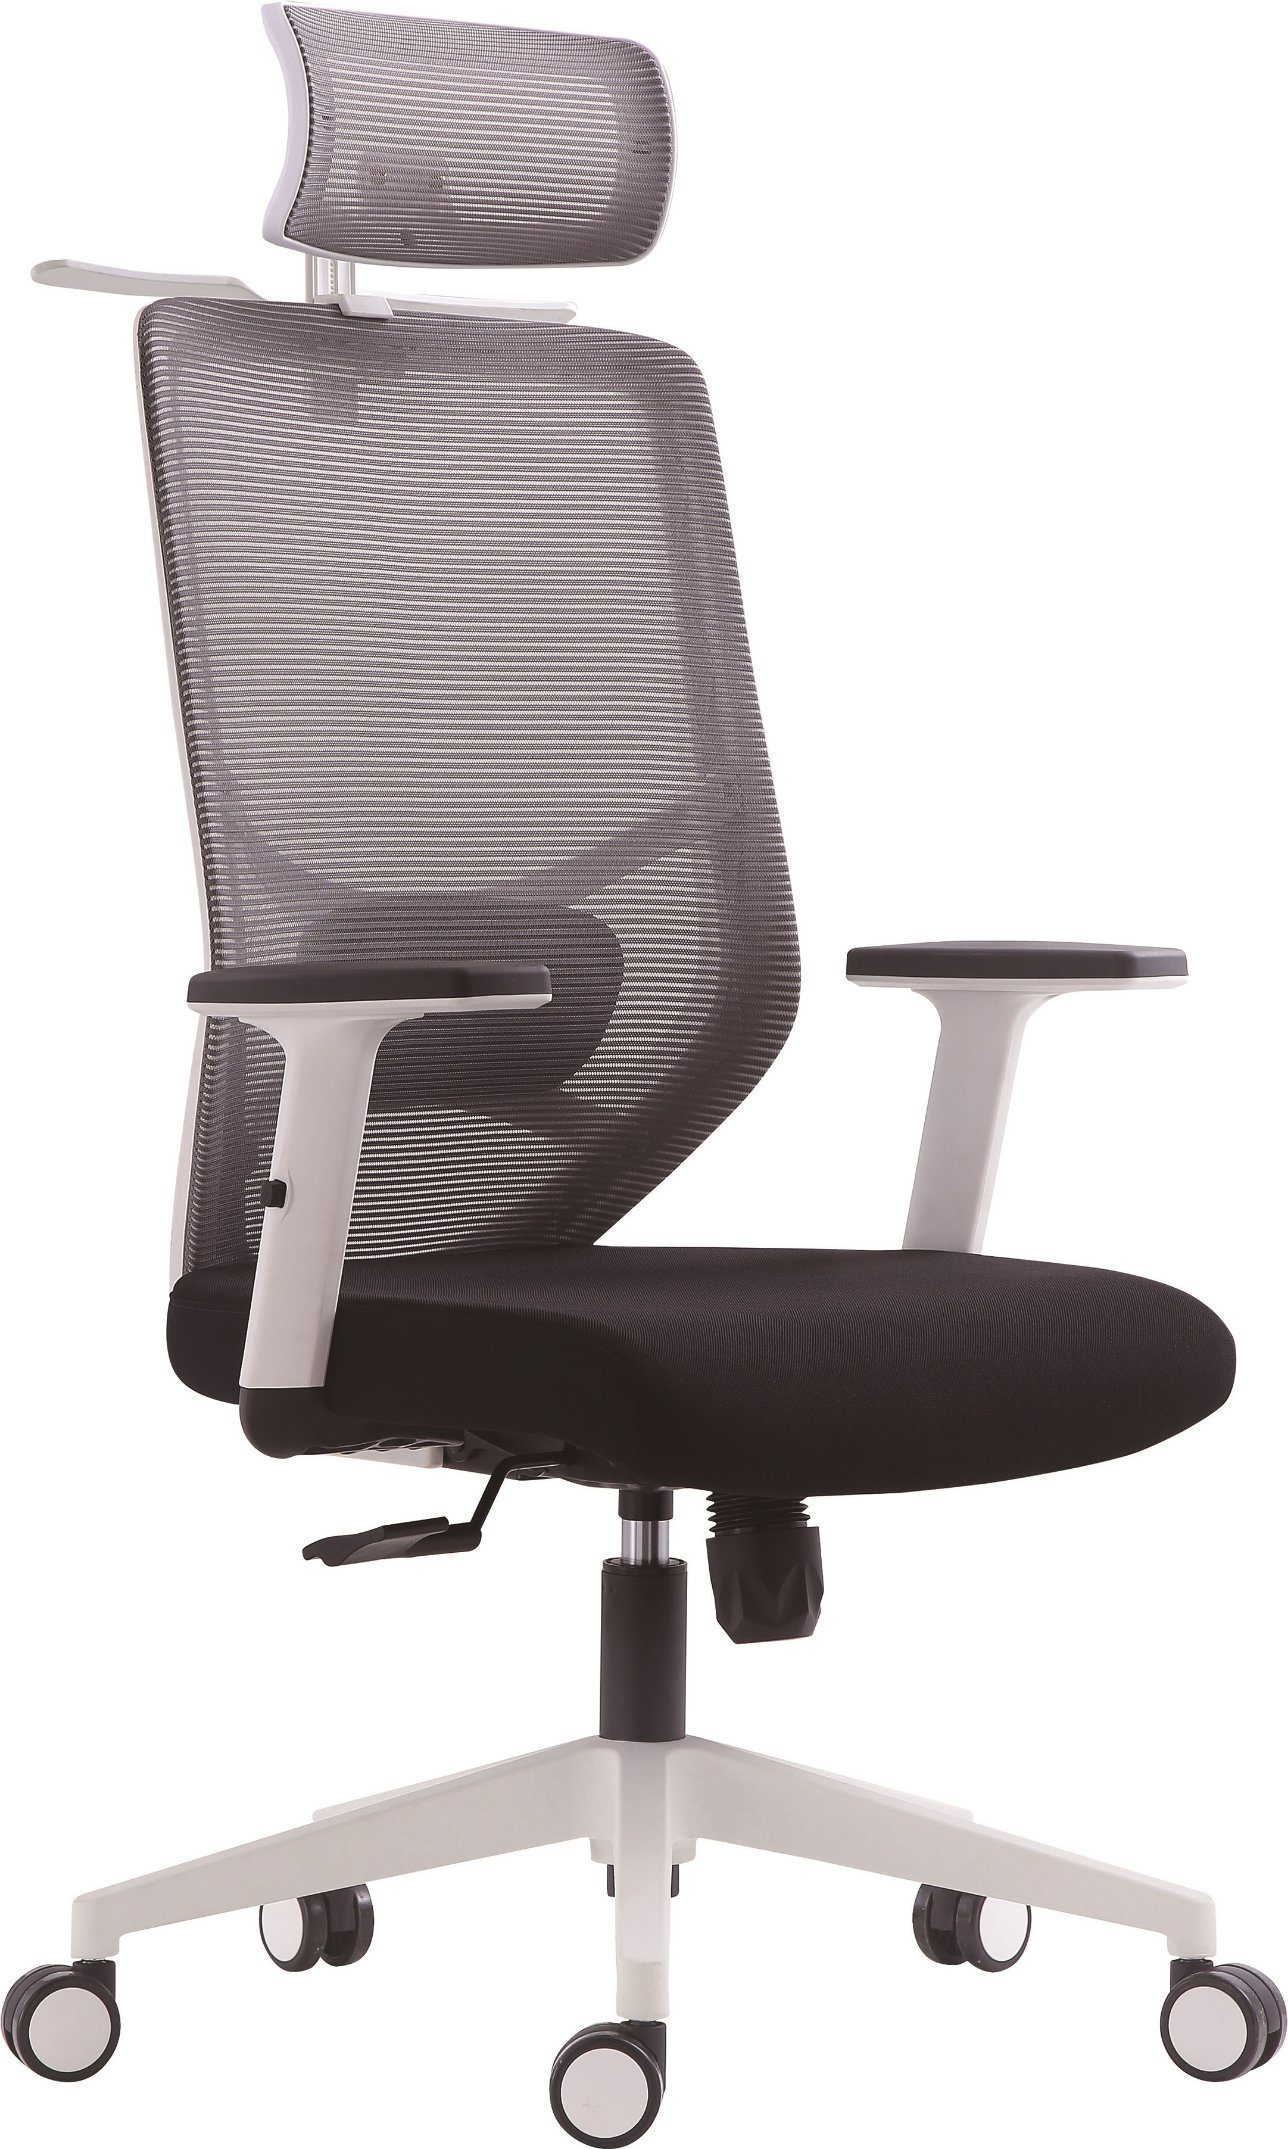 Swell Hot Item Ergonomic Office Chair High Quality Mesh Chair Executive Chair Adjustable Arm New Design Office Furniture 2019 Home Interior And Landscaping Transignezvosmurscom